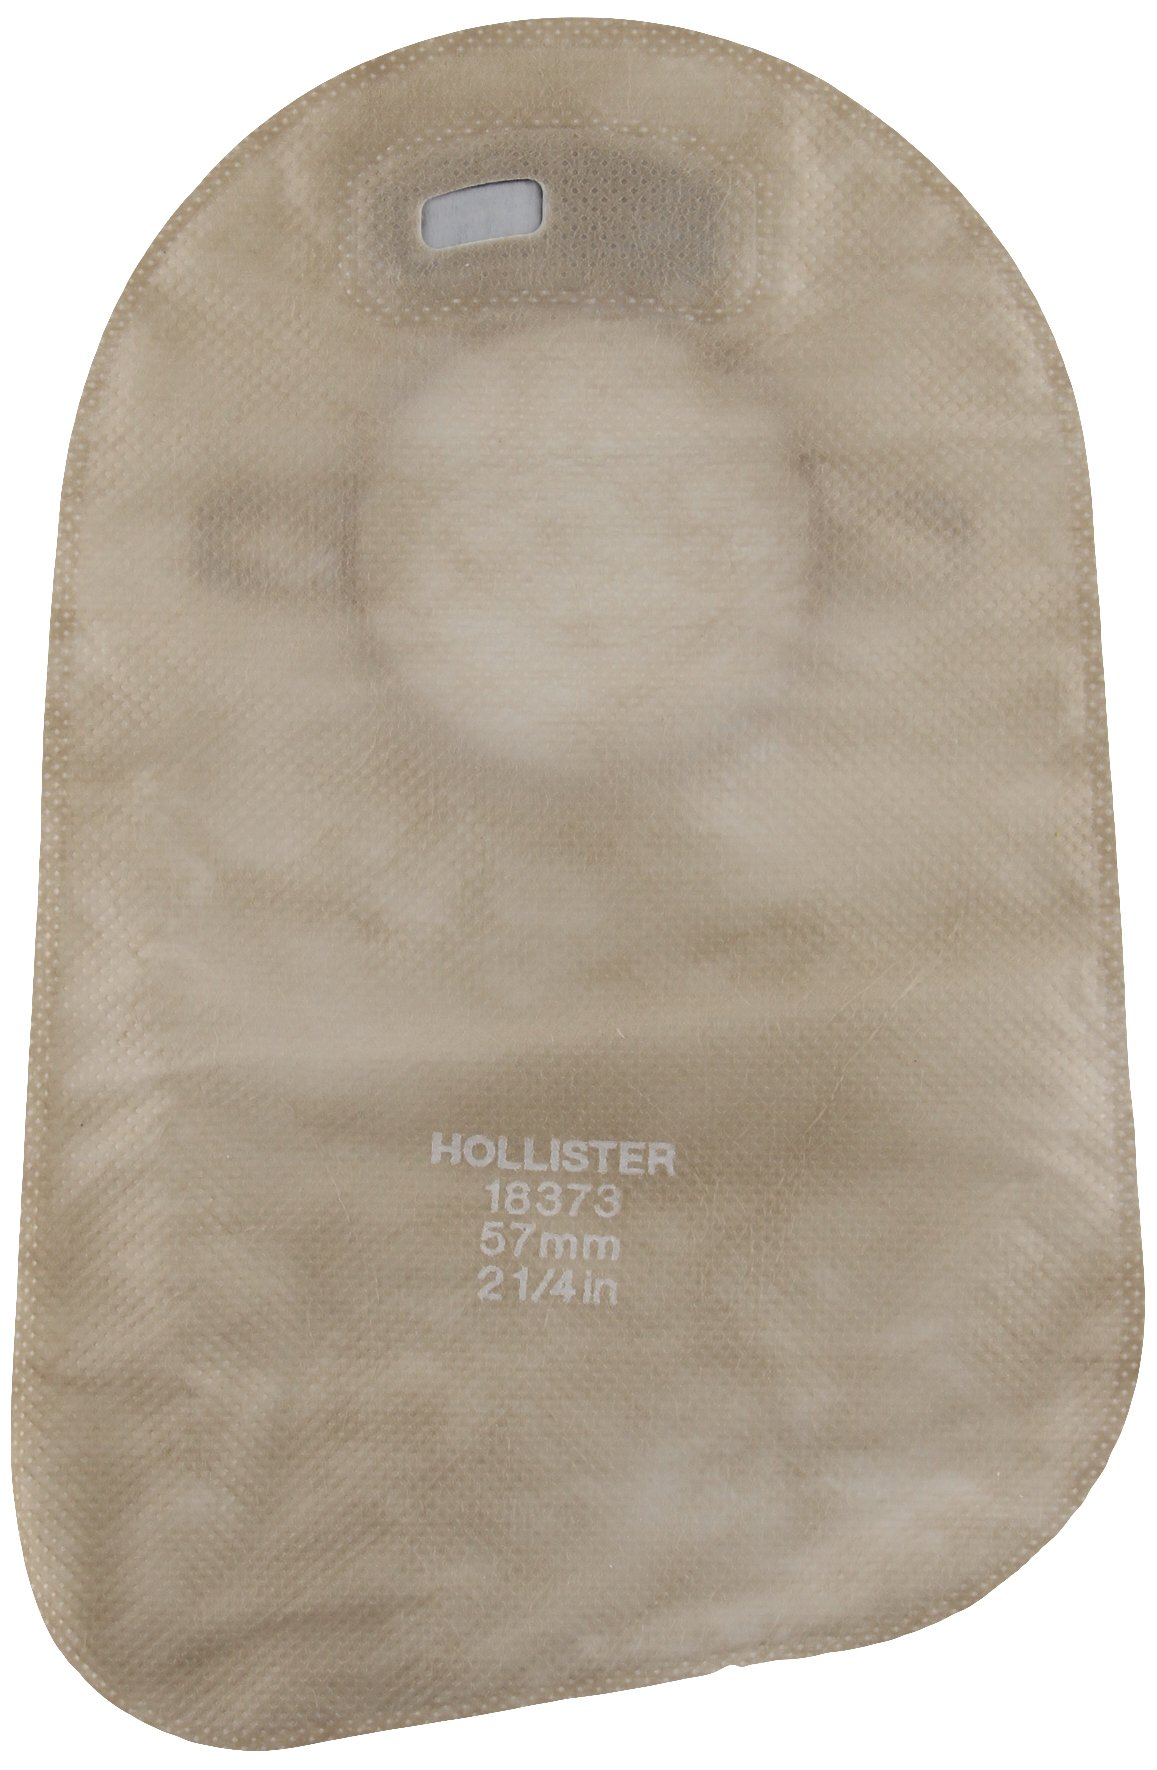 5018373 - Hollister Inc New Image 2-Piece Closed-End Pouch 2-1/4, Beige